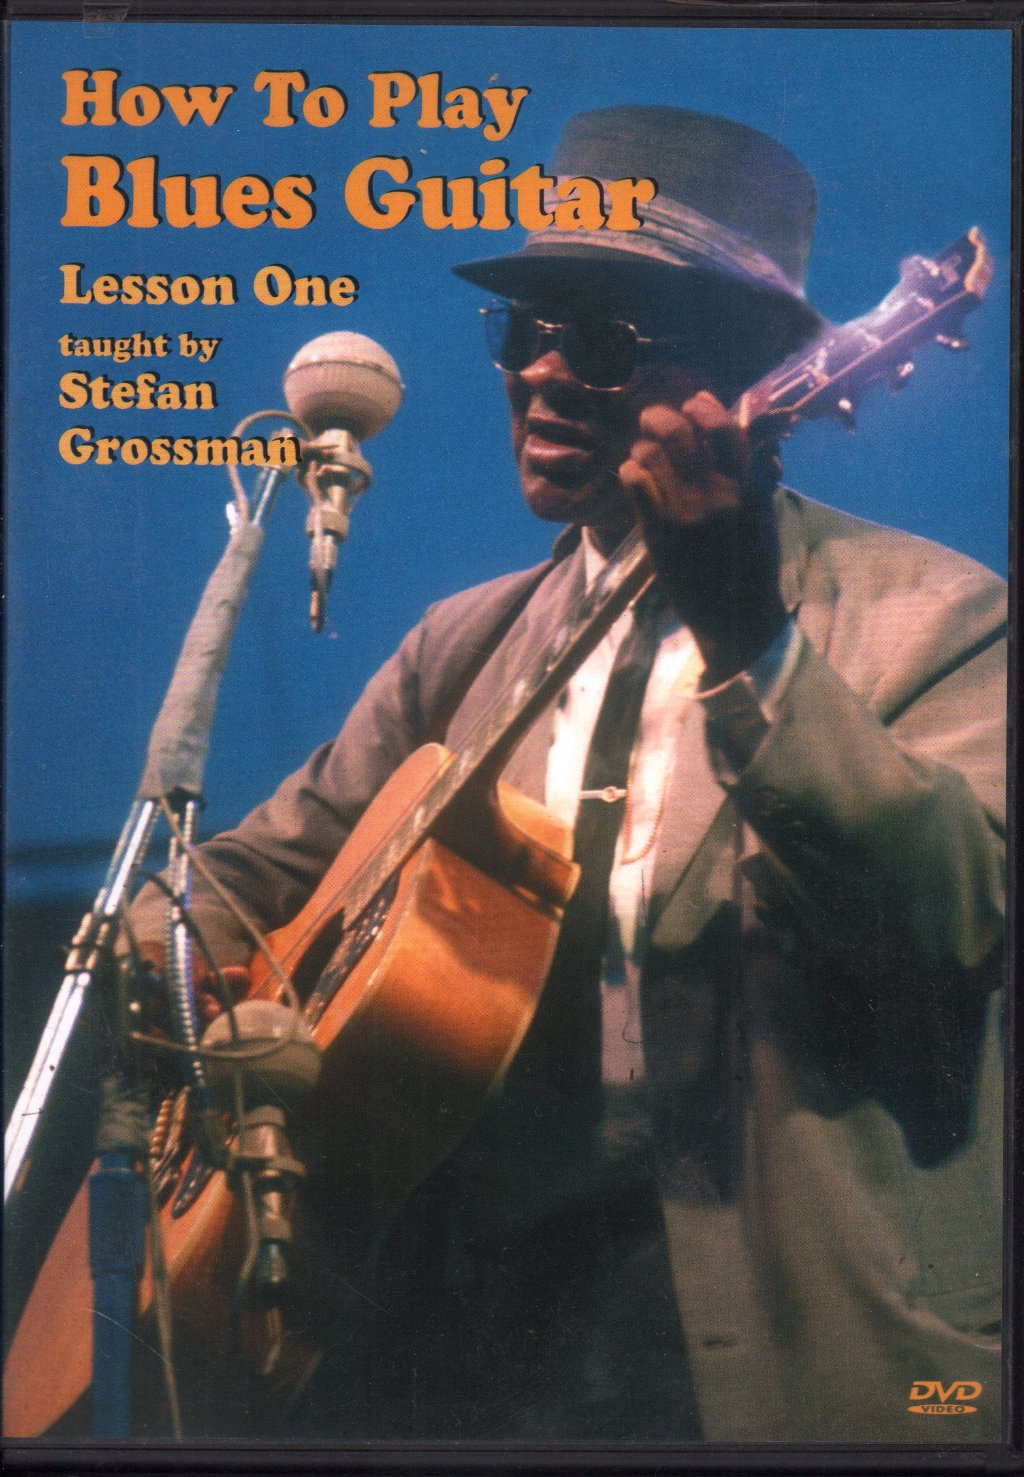 STEFAN GROSSMAN - How To Play Blues Guitar Lesson One - DVD